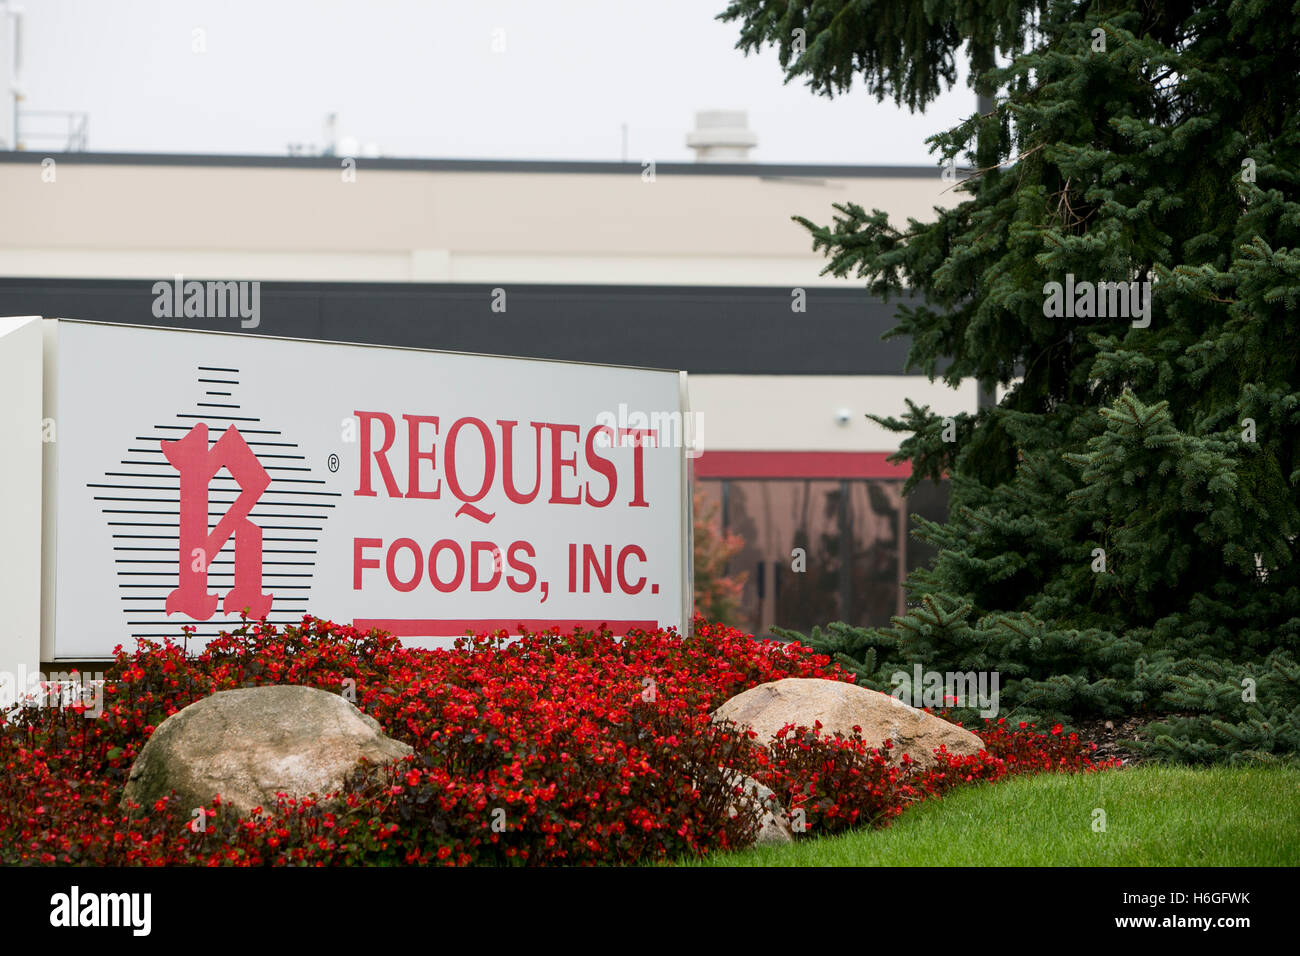 A logo sign outside of the headquarters of Request Foods, Inc., in Holland, Michigan on October 16, 2016. - Stock Image